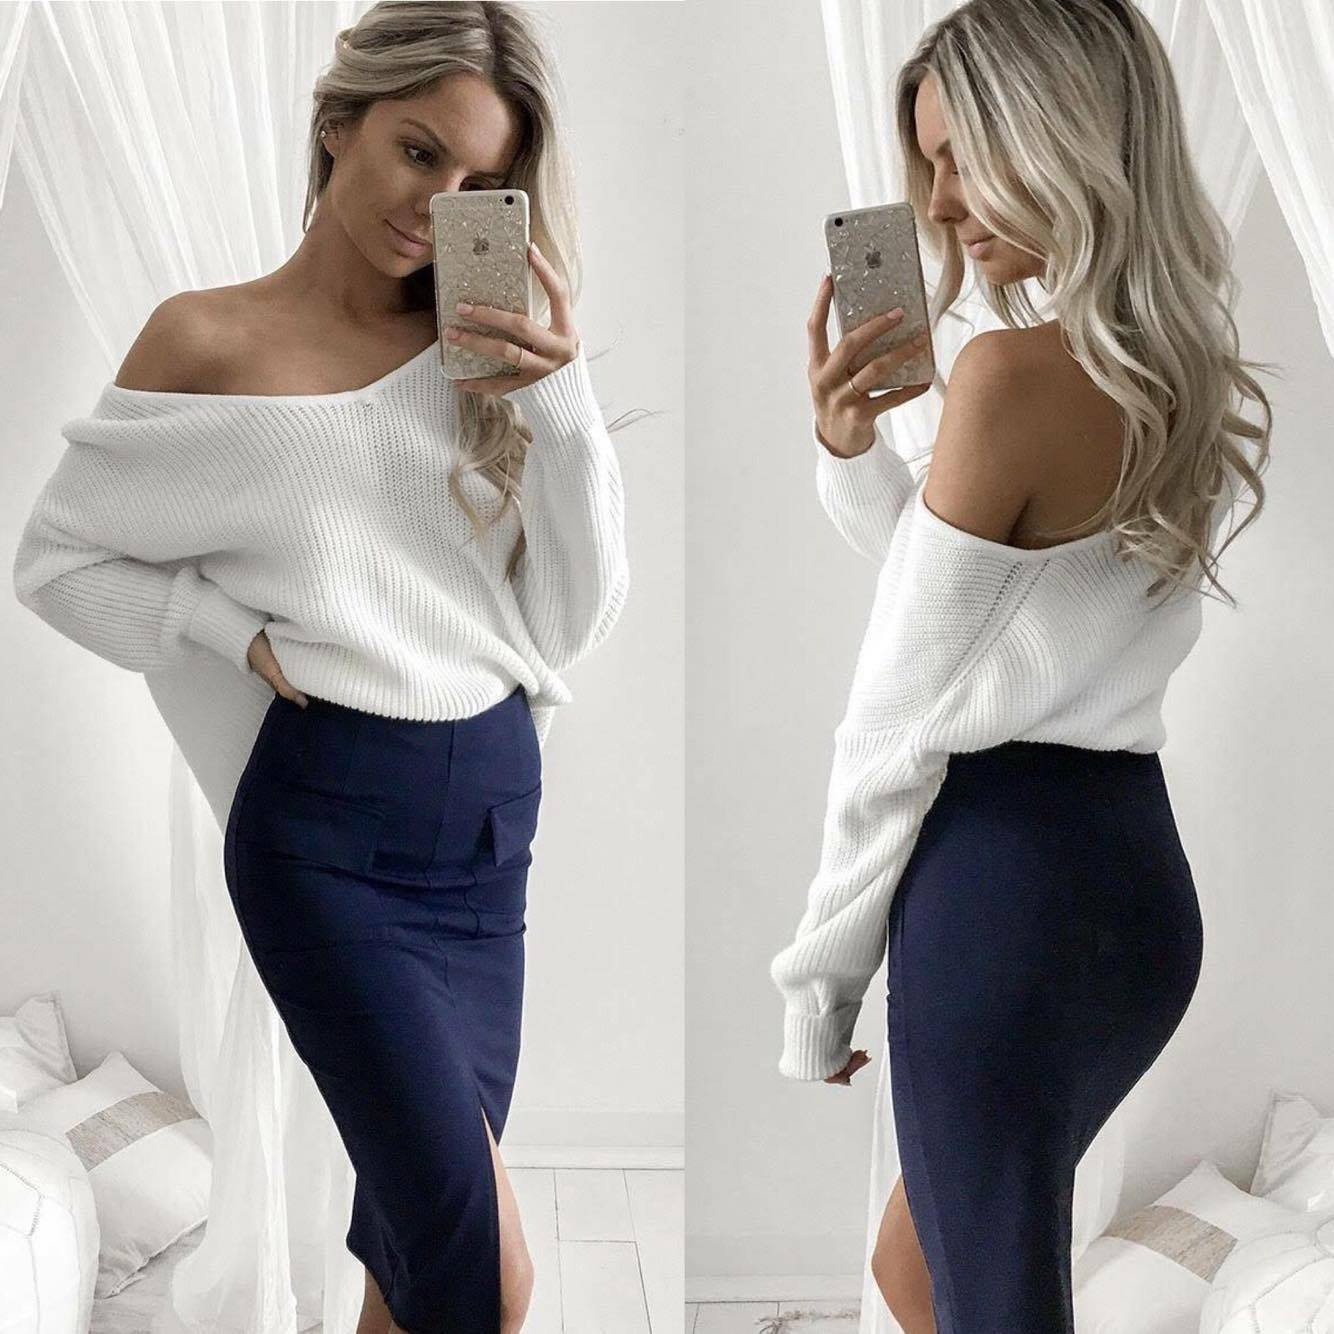 d38d4f958f6 Details about Women Off Shoulder Baggy Lady Long Sleeve Tops Casual Knitted  Sweater Jumper